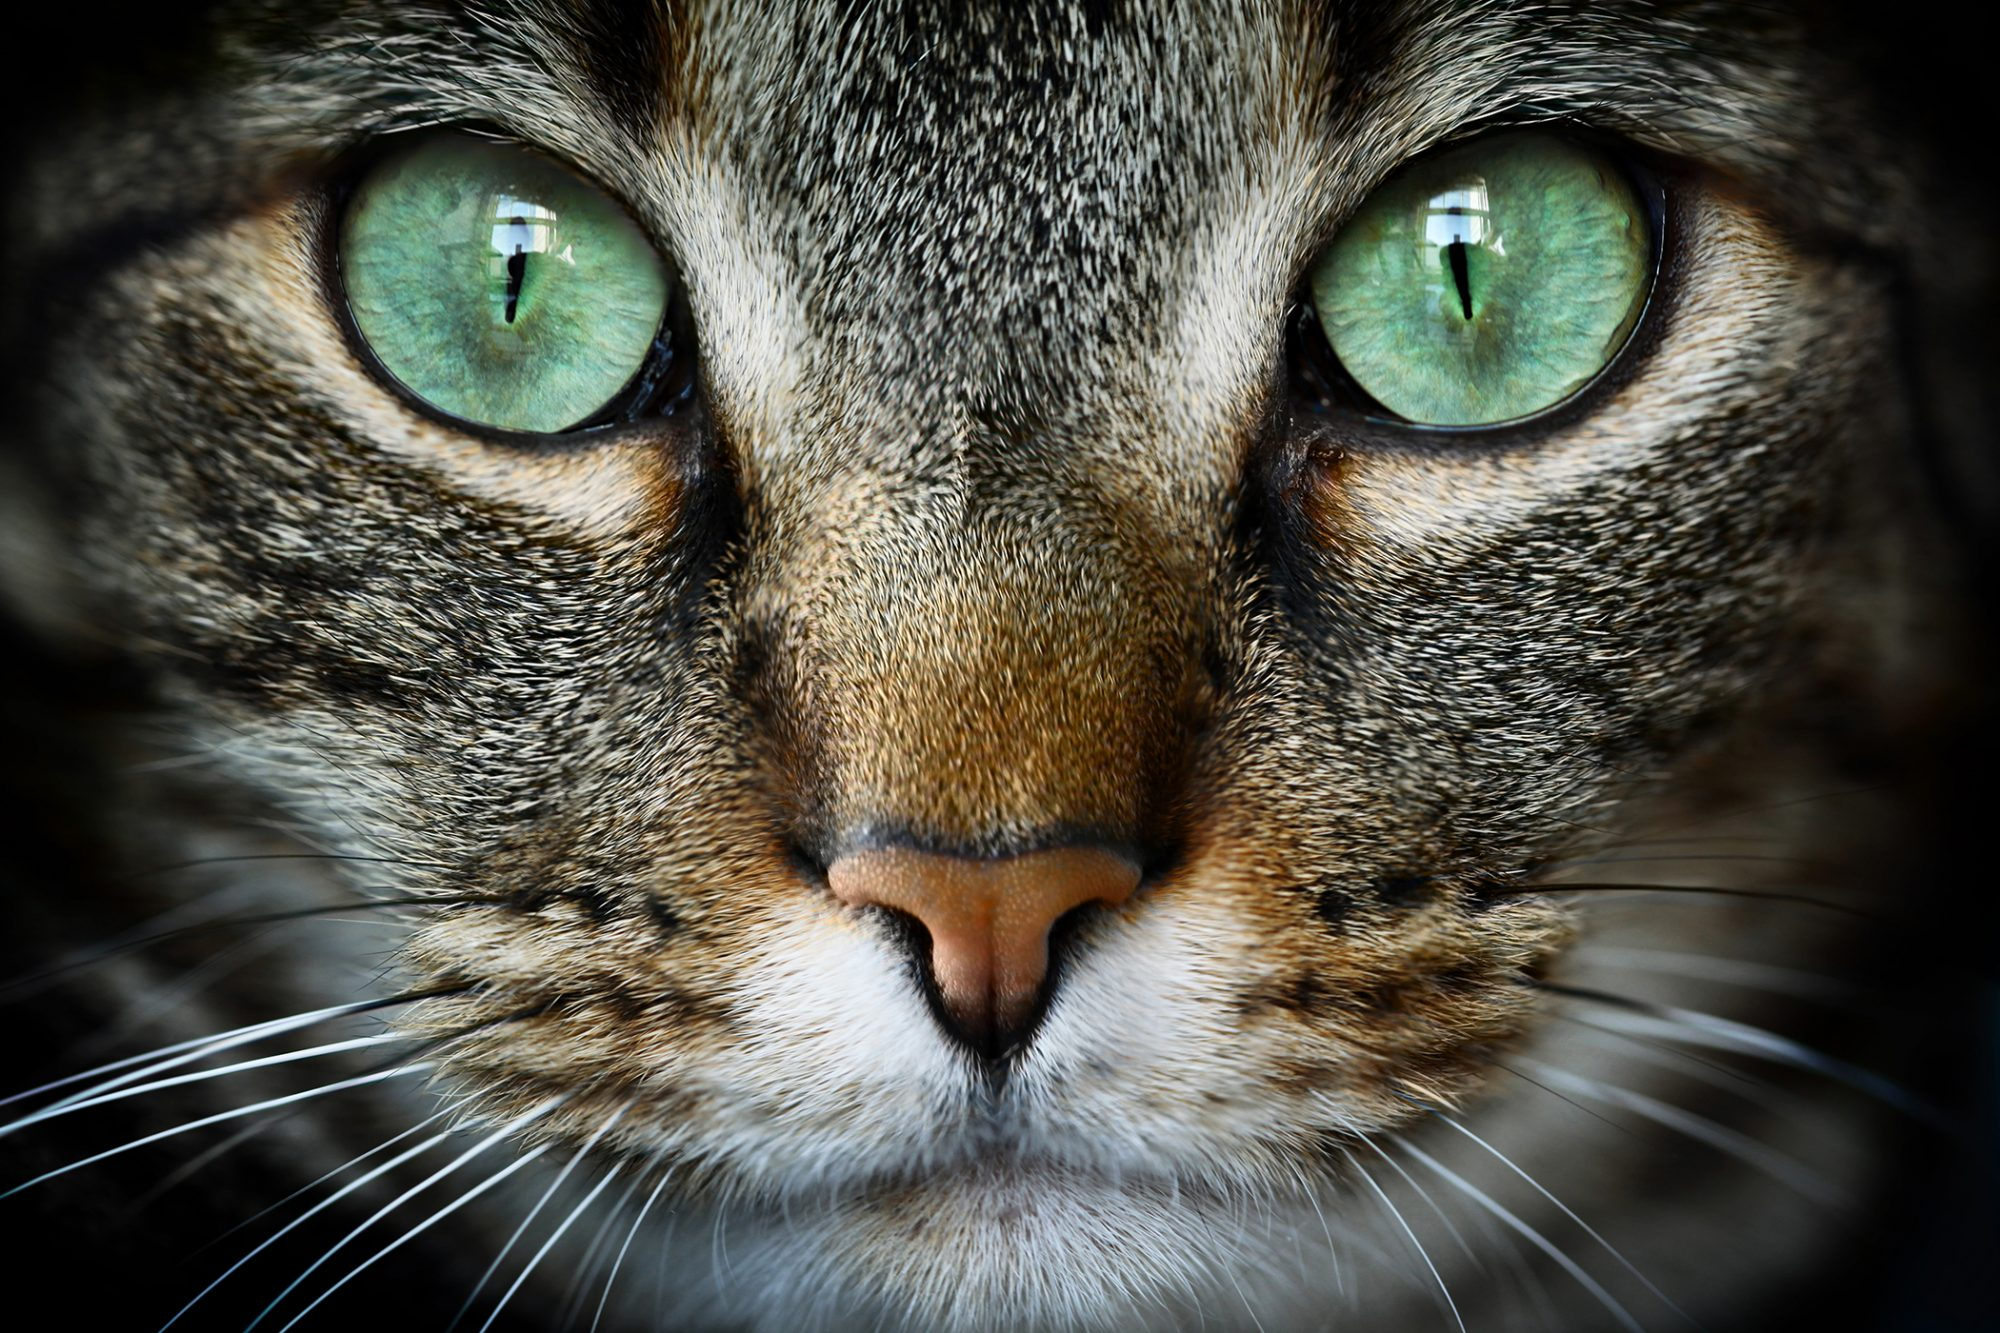 striped cat with bright green eyes looks directly at the camera, close-up